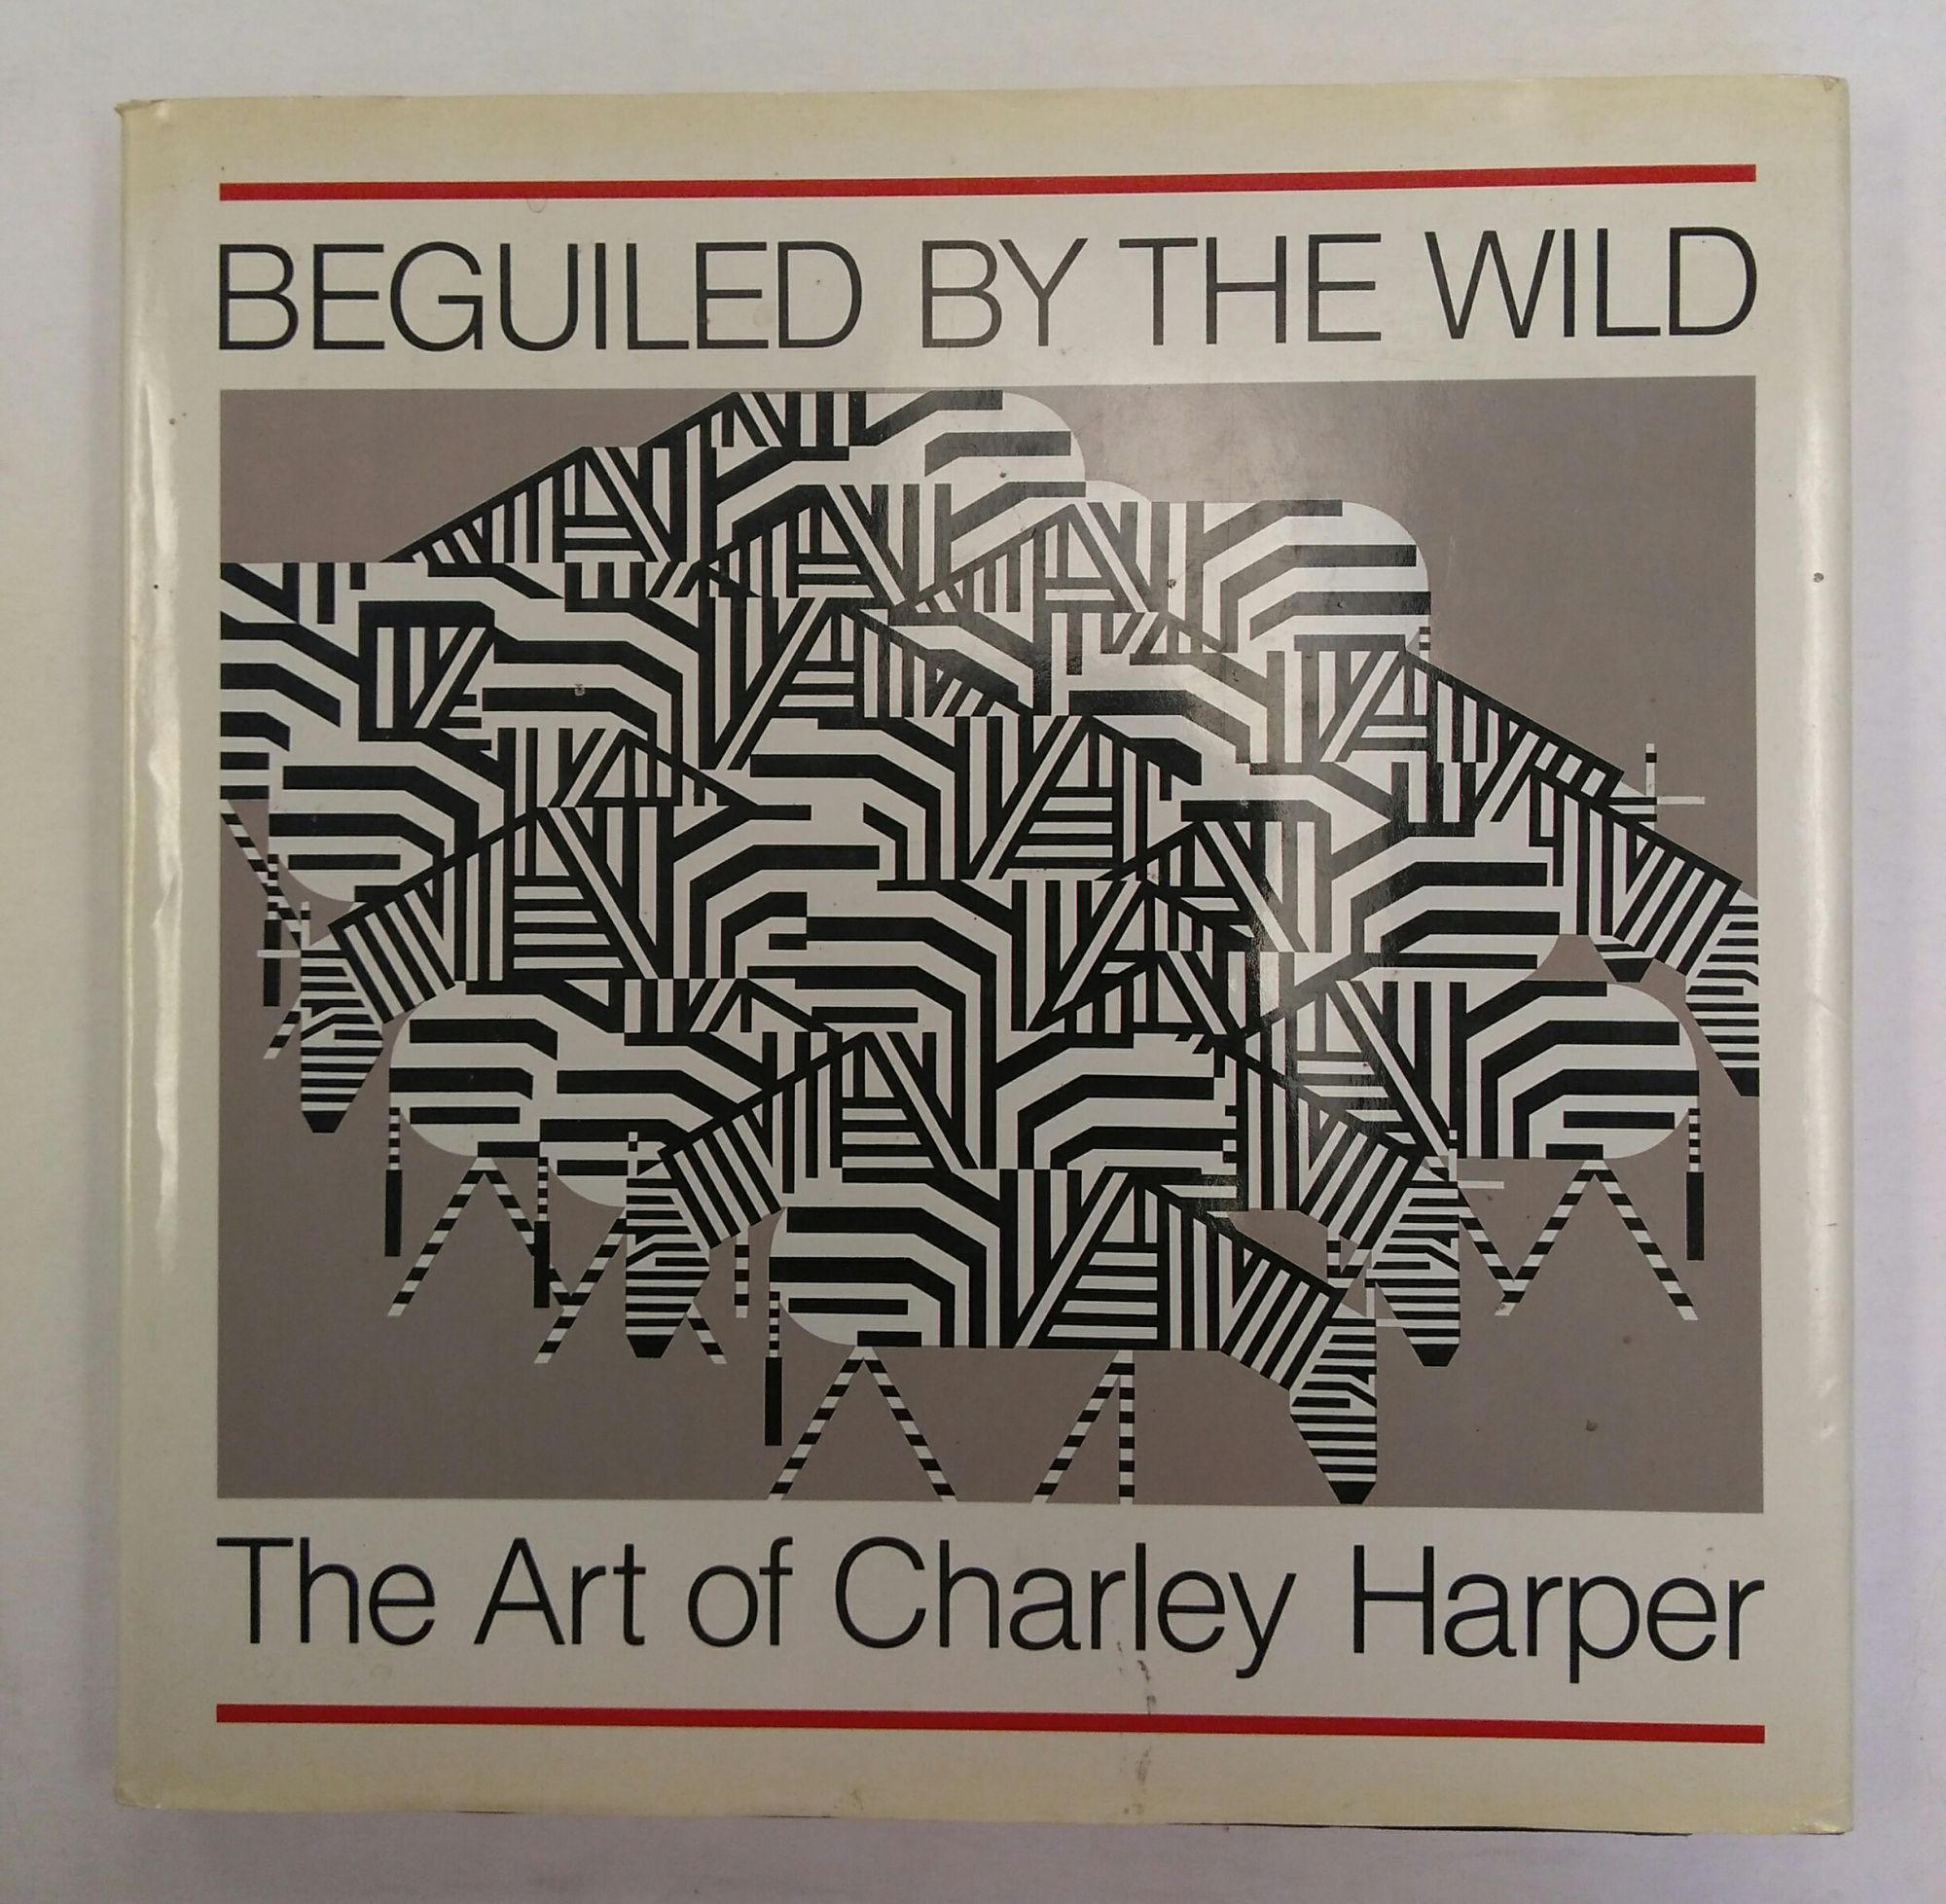 BEGUILED BY THE WILD: THE ART OF CHARLEY HARPER [INSCRIBED]. Charley Harper.